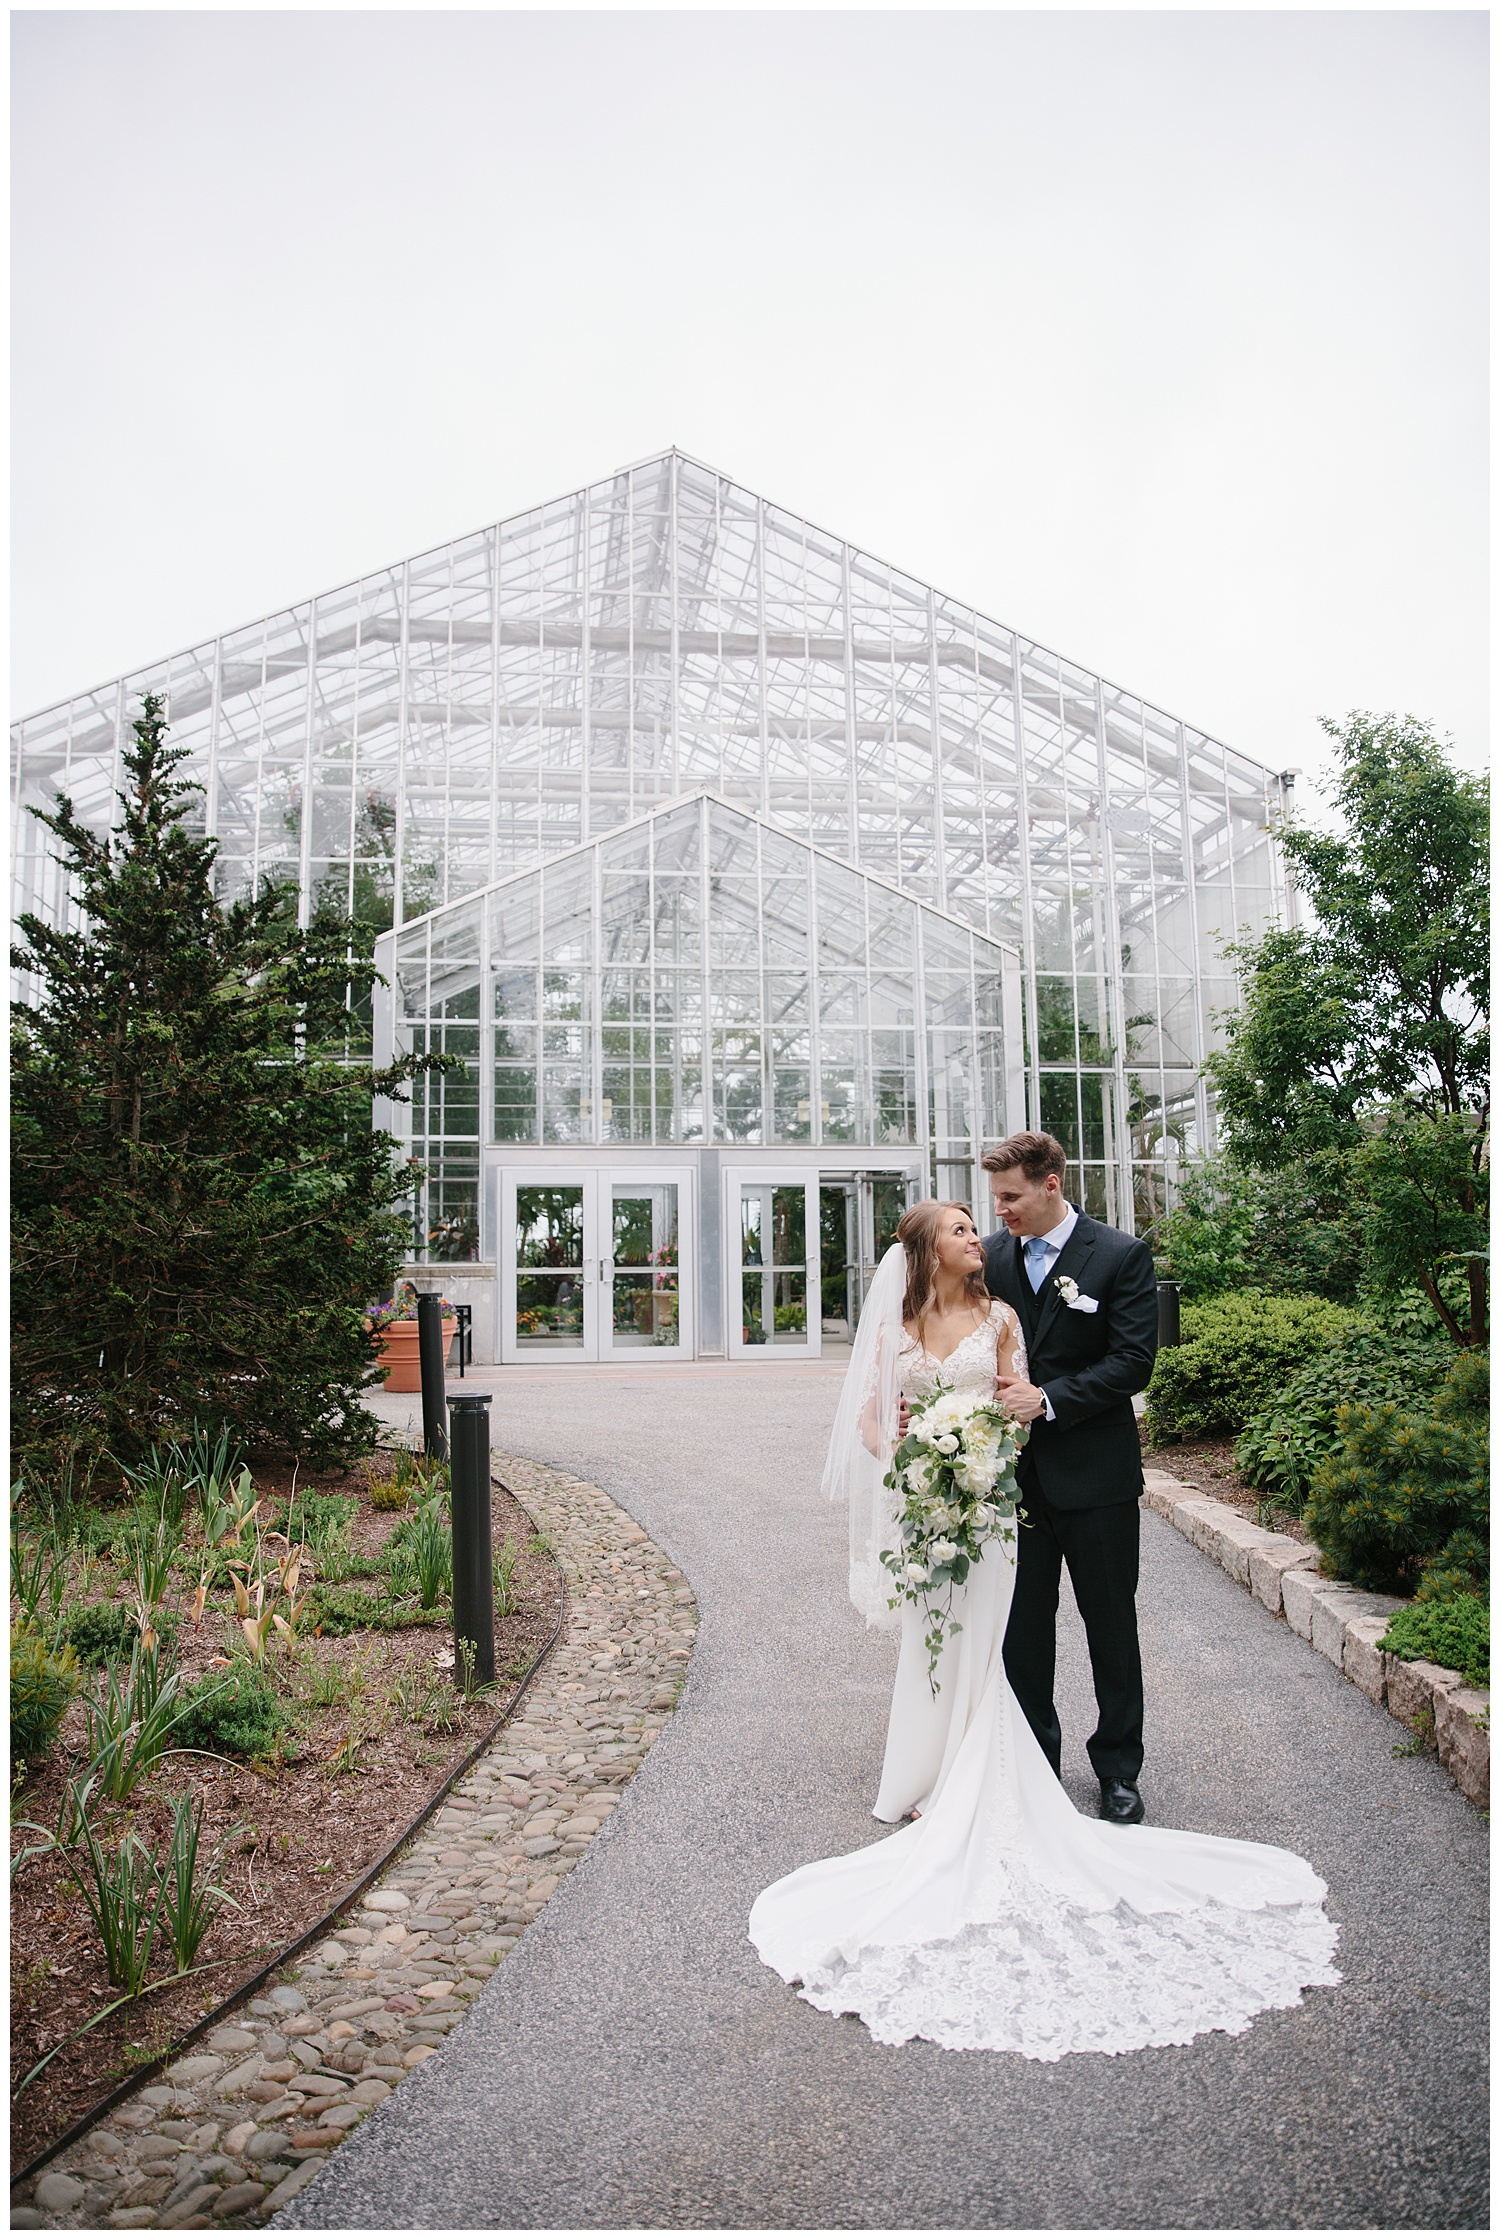 Tyler + Brynn + Botanical Gardens + Roger Williams + Rhode Island + Wedding_0088.jpg